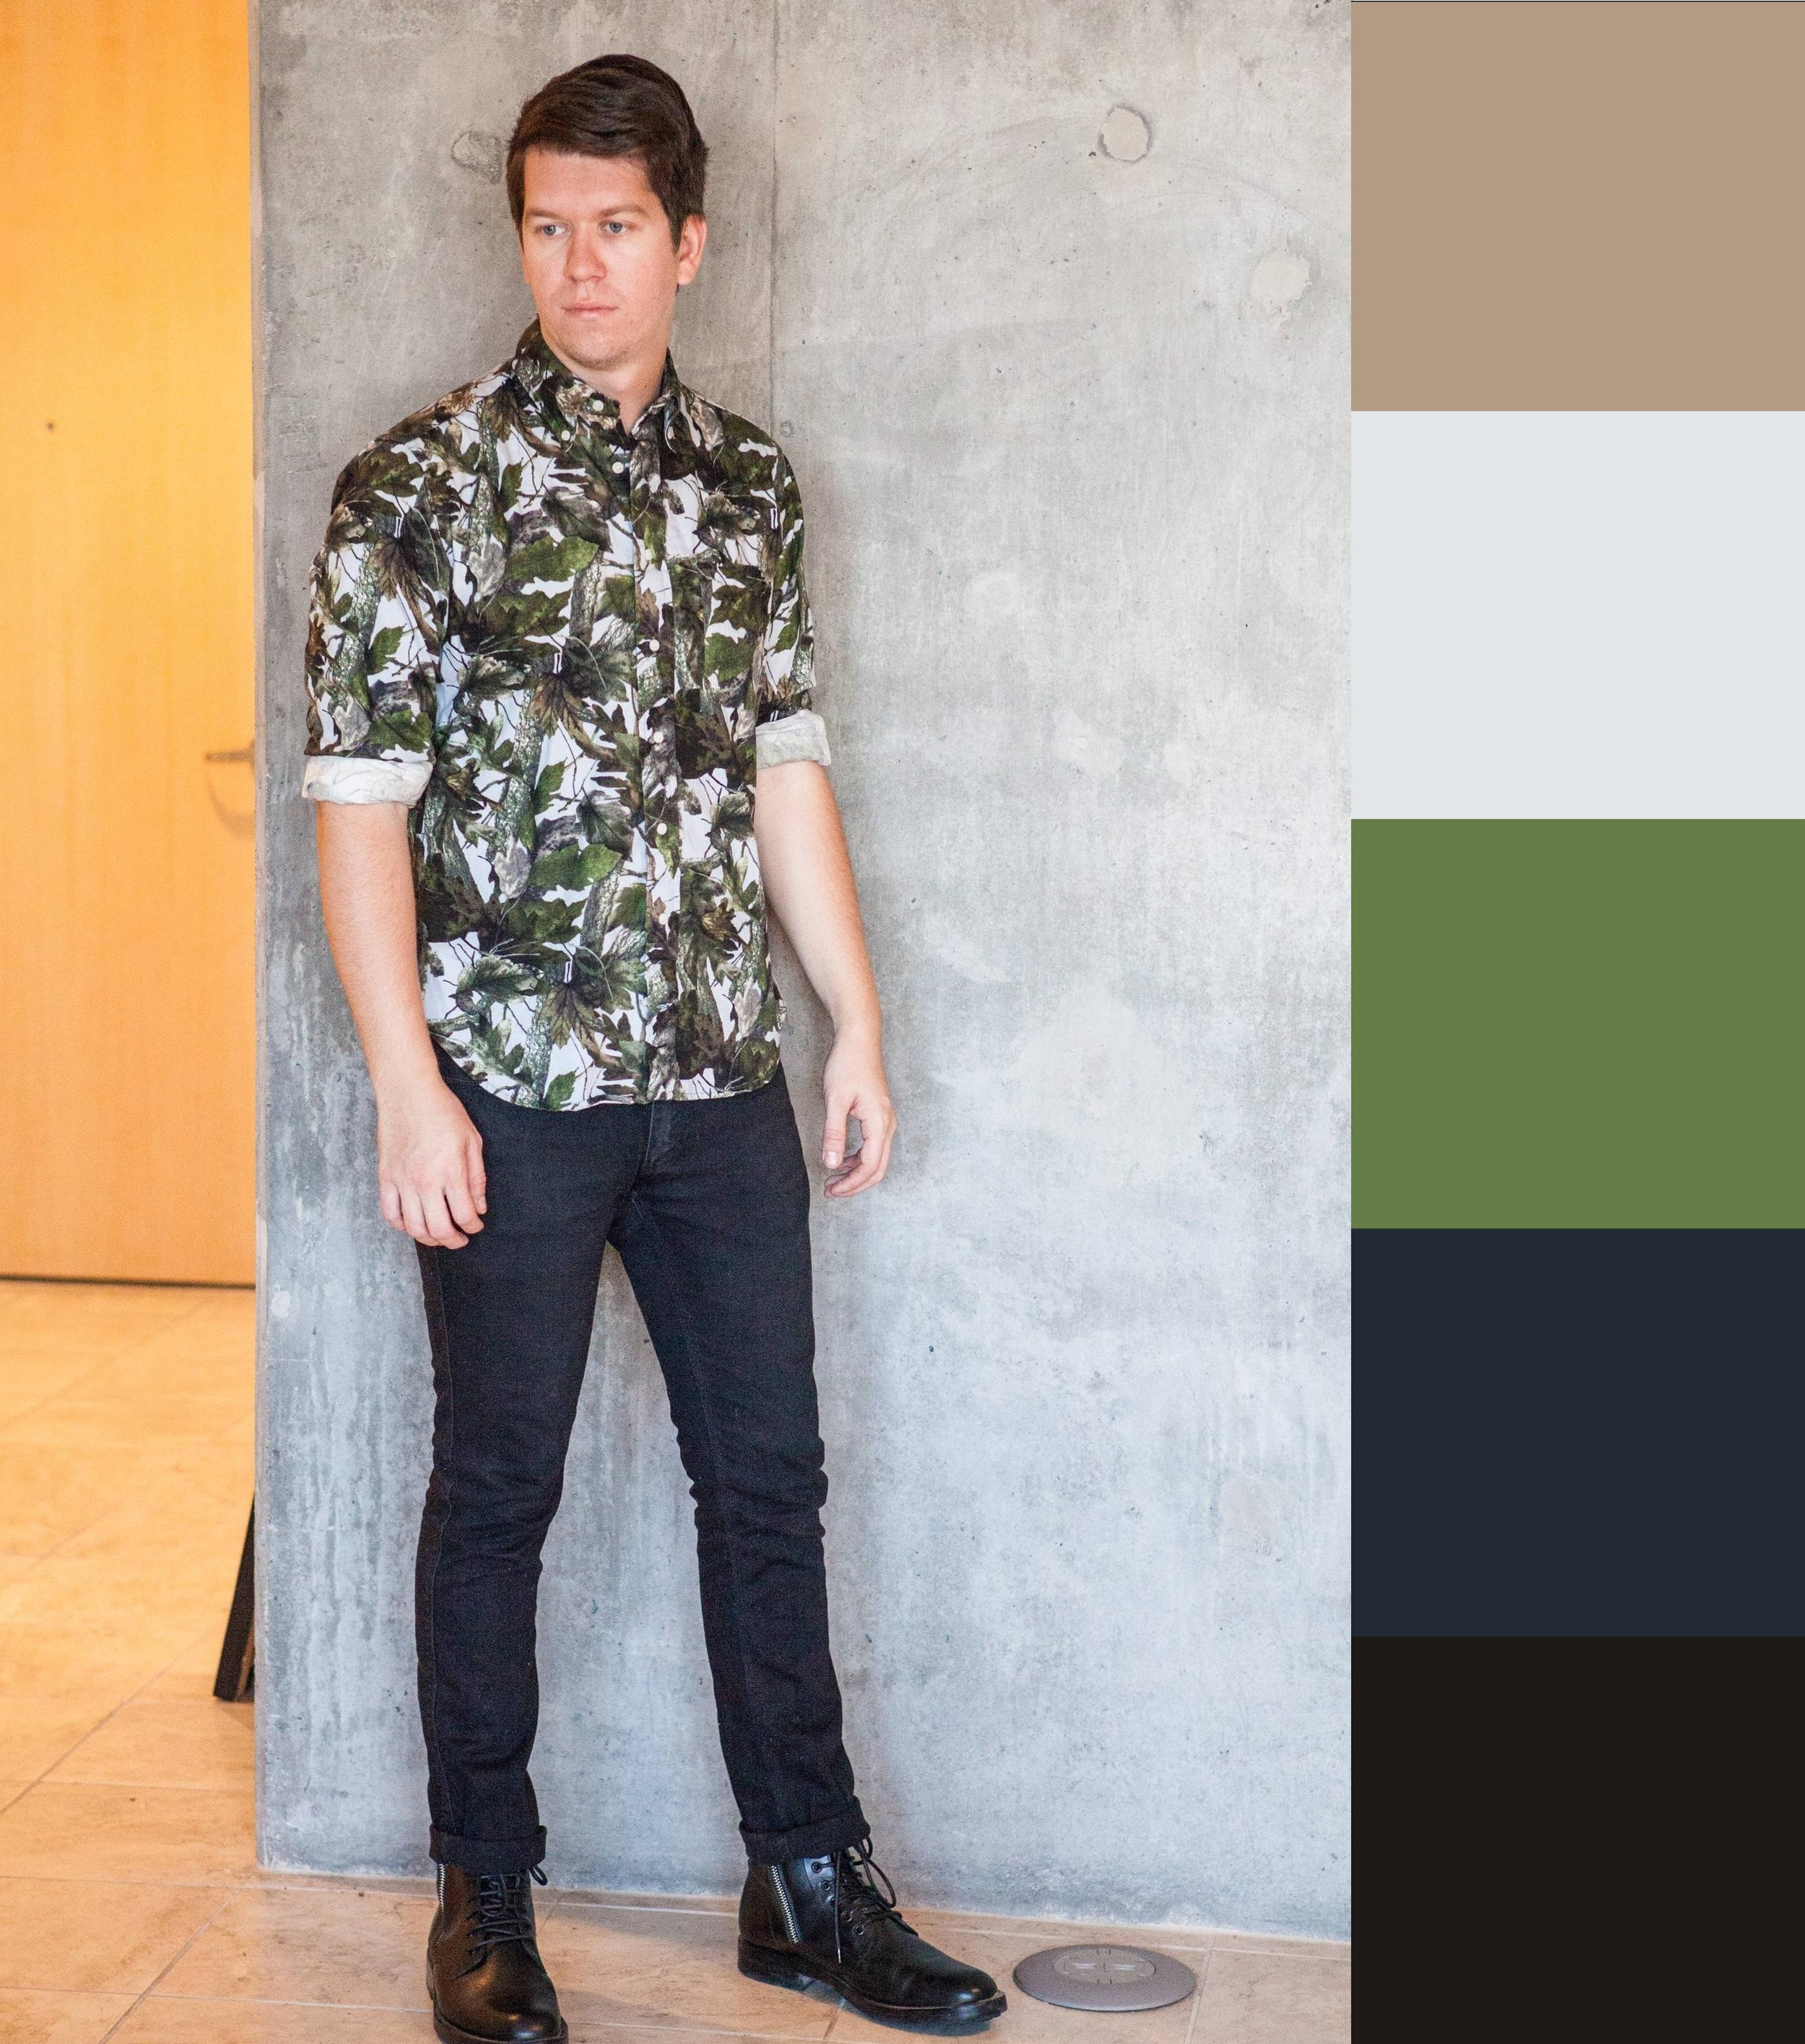 A textbook case of the importance of saturation. Unrelated colors (indigo, green, brown) with enough similar qualities to build a cohesive outfit. White and black anchor the variation, meaning the unrelated colors are different within definite bounds. One of my favorite outfits ever.